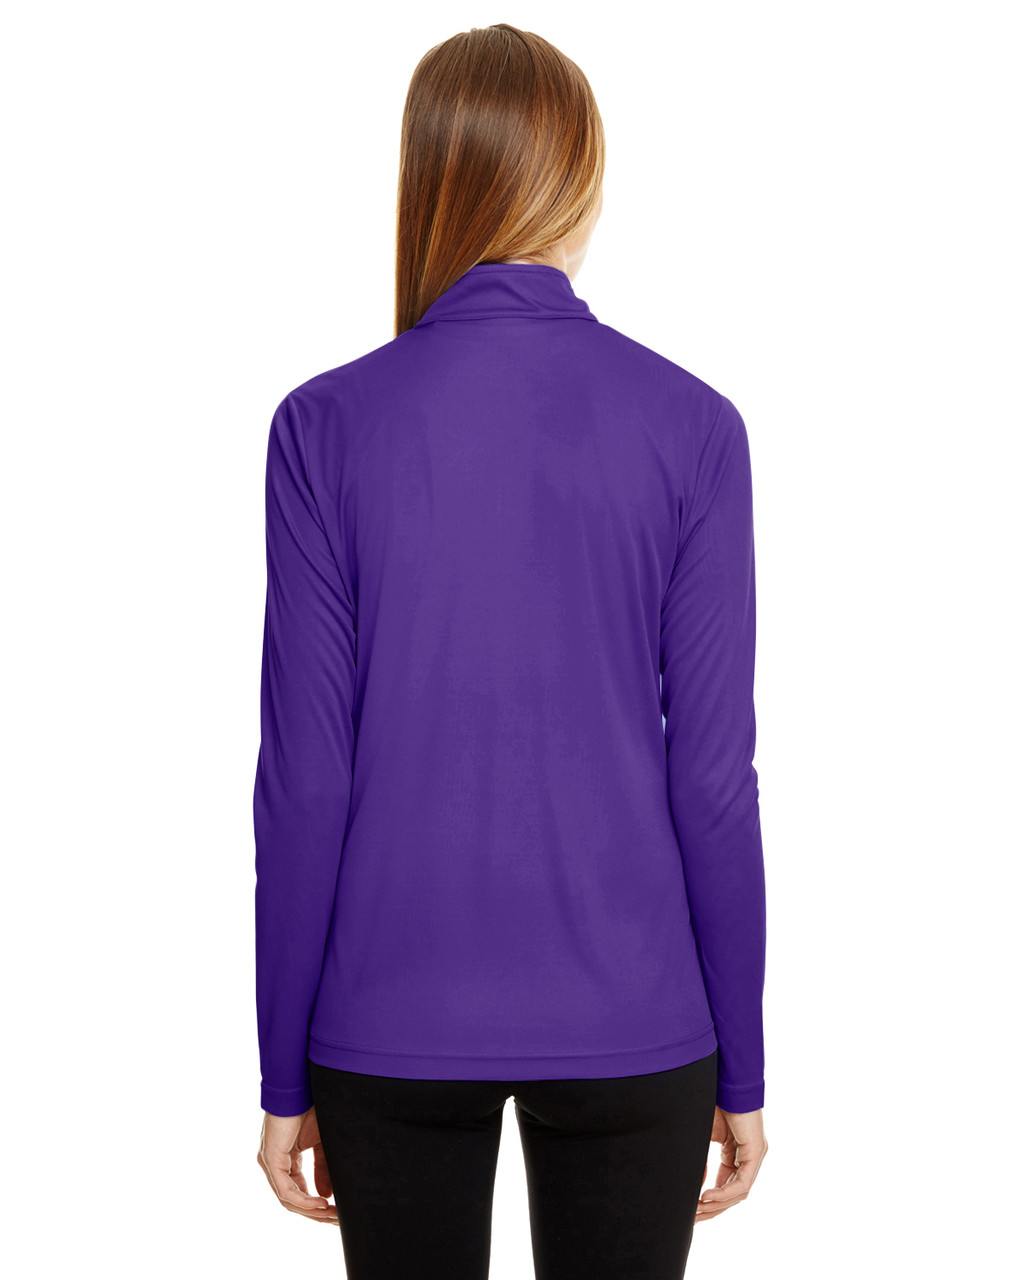 Sport Purple - TT31W Team 365 Ladies' Zone Performance Quarter-Zip Shirt